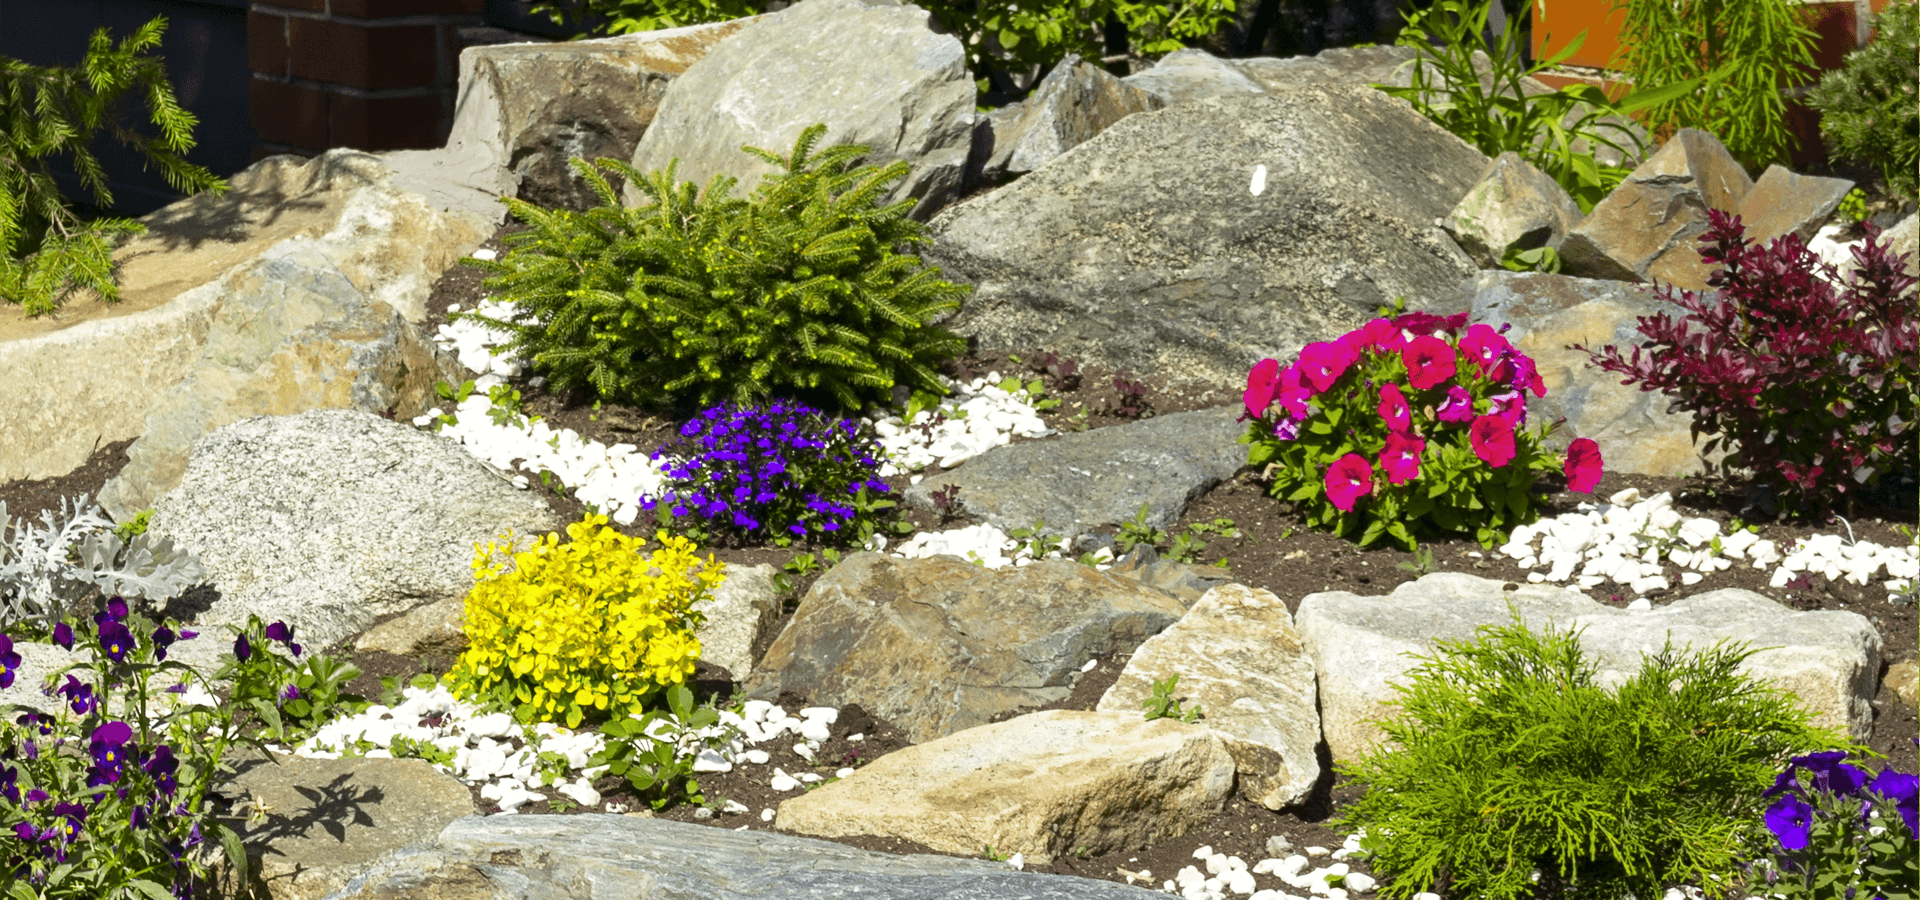 Where can you buy rockery stone online?